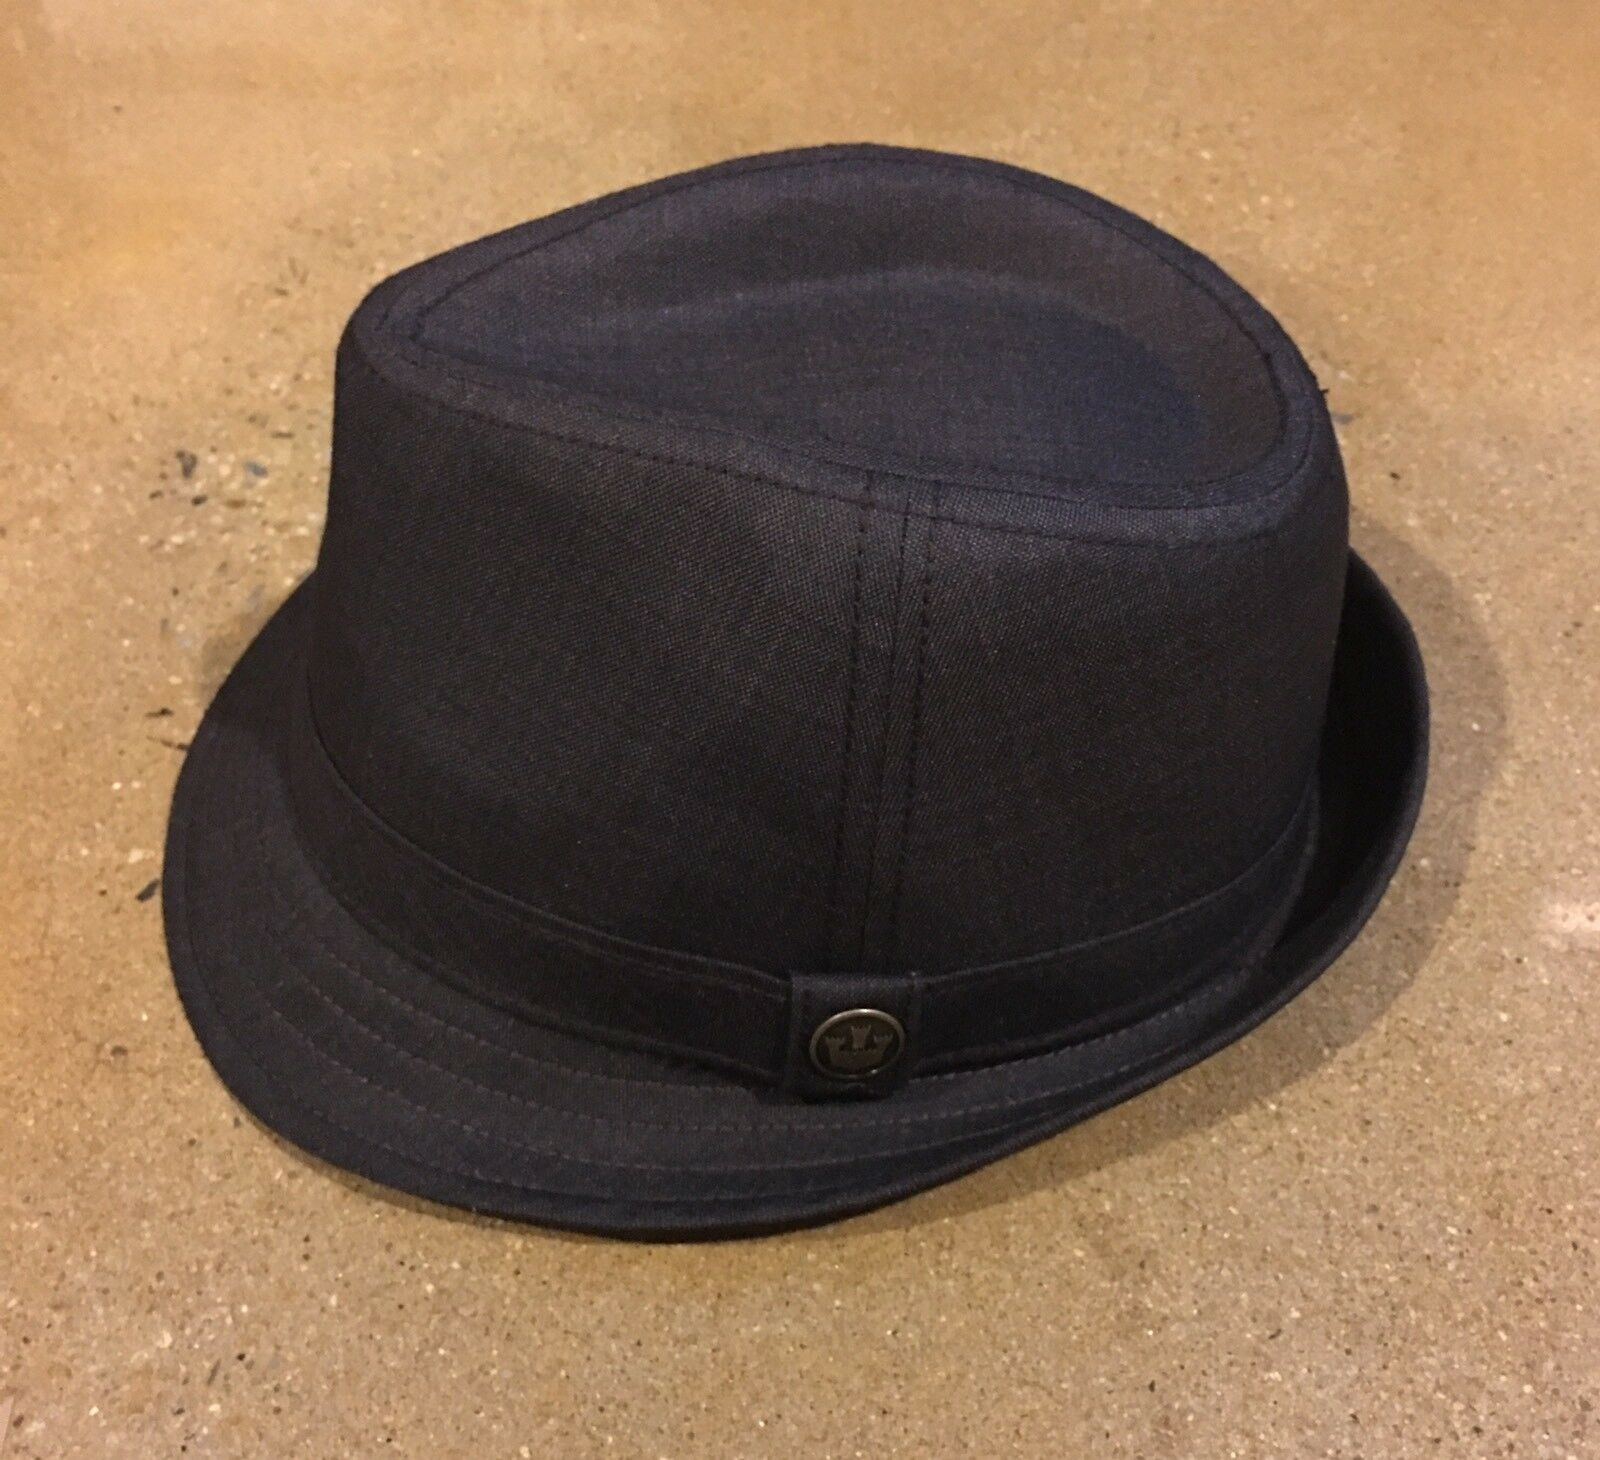 Goorin Brothers Tim Johnson Classic Fedora Hat  Deadstock Olive Large 7 3/8 Deadstock  e5f0e5